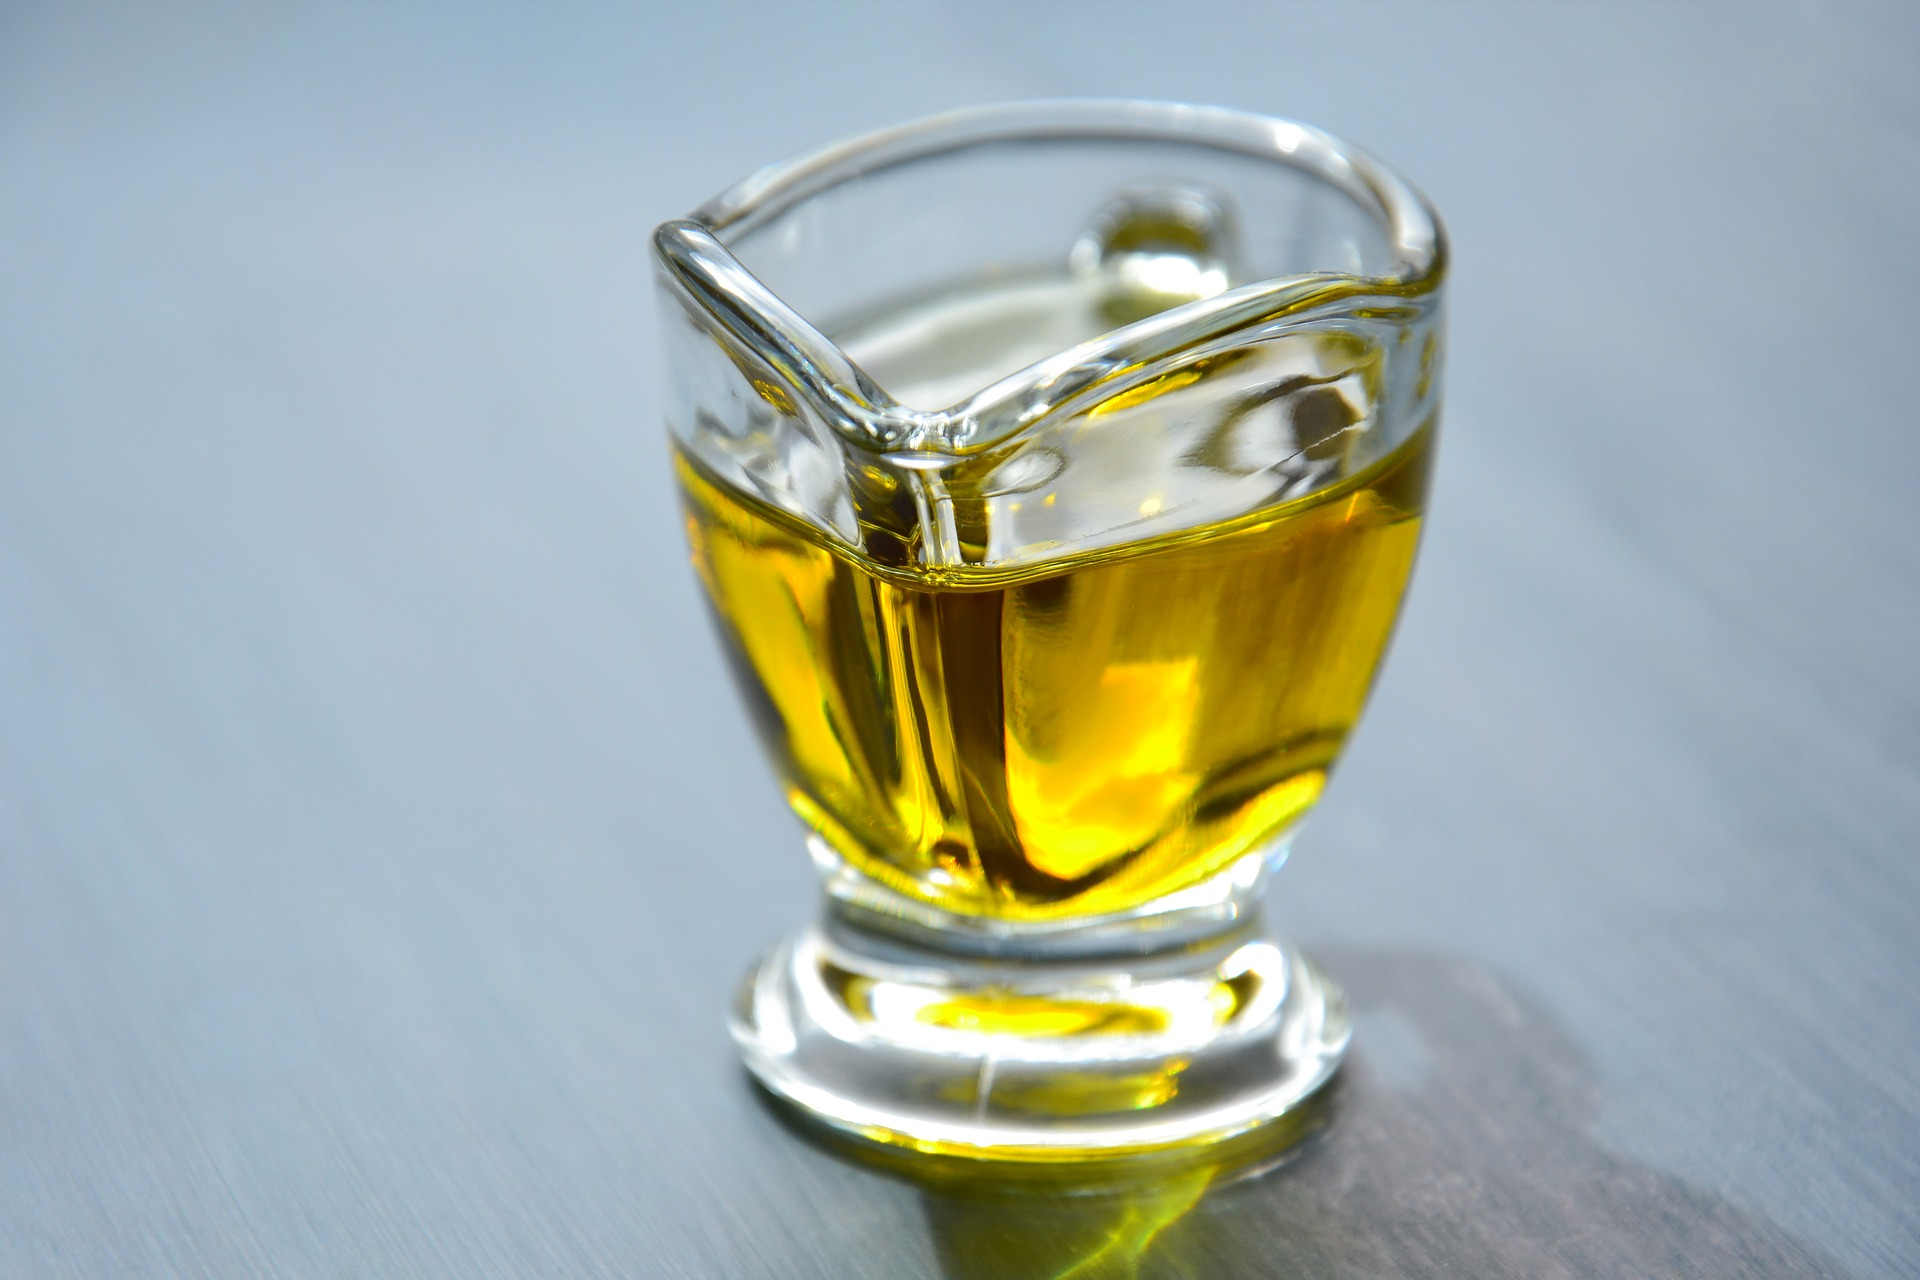 How to Use Olive Oil to Help Prevent a Stroke